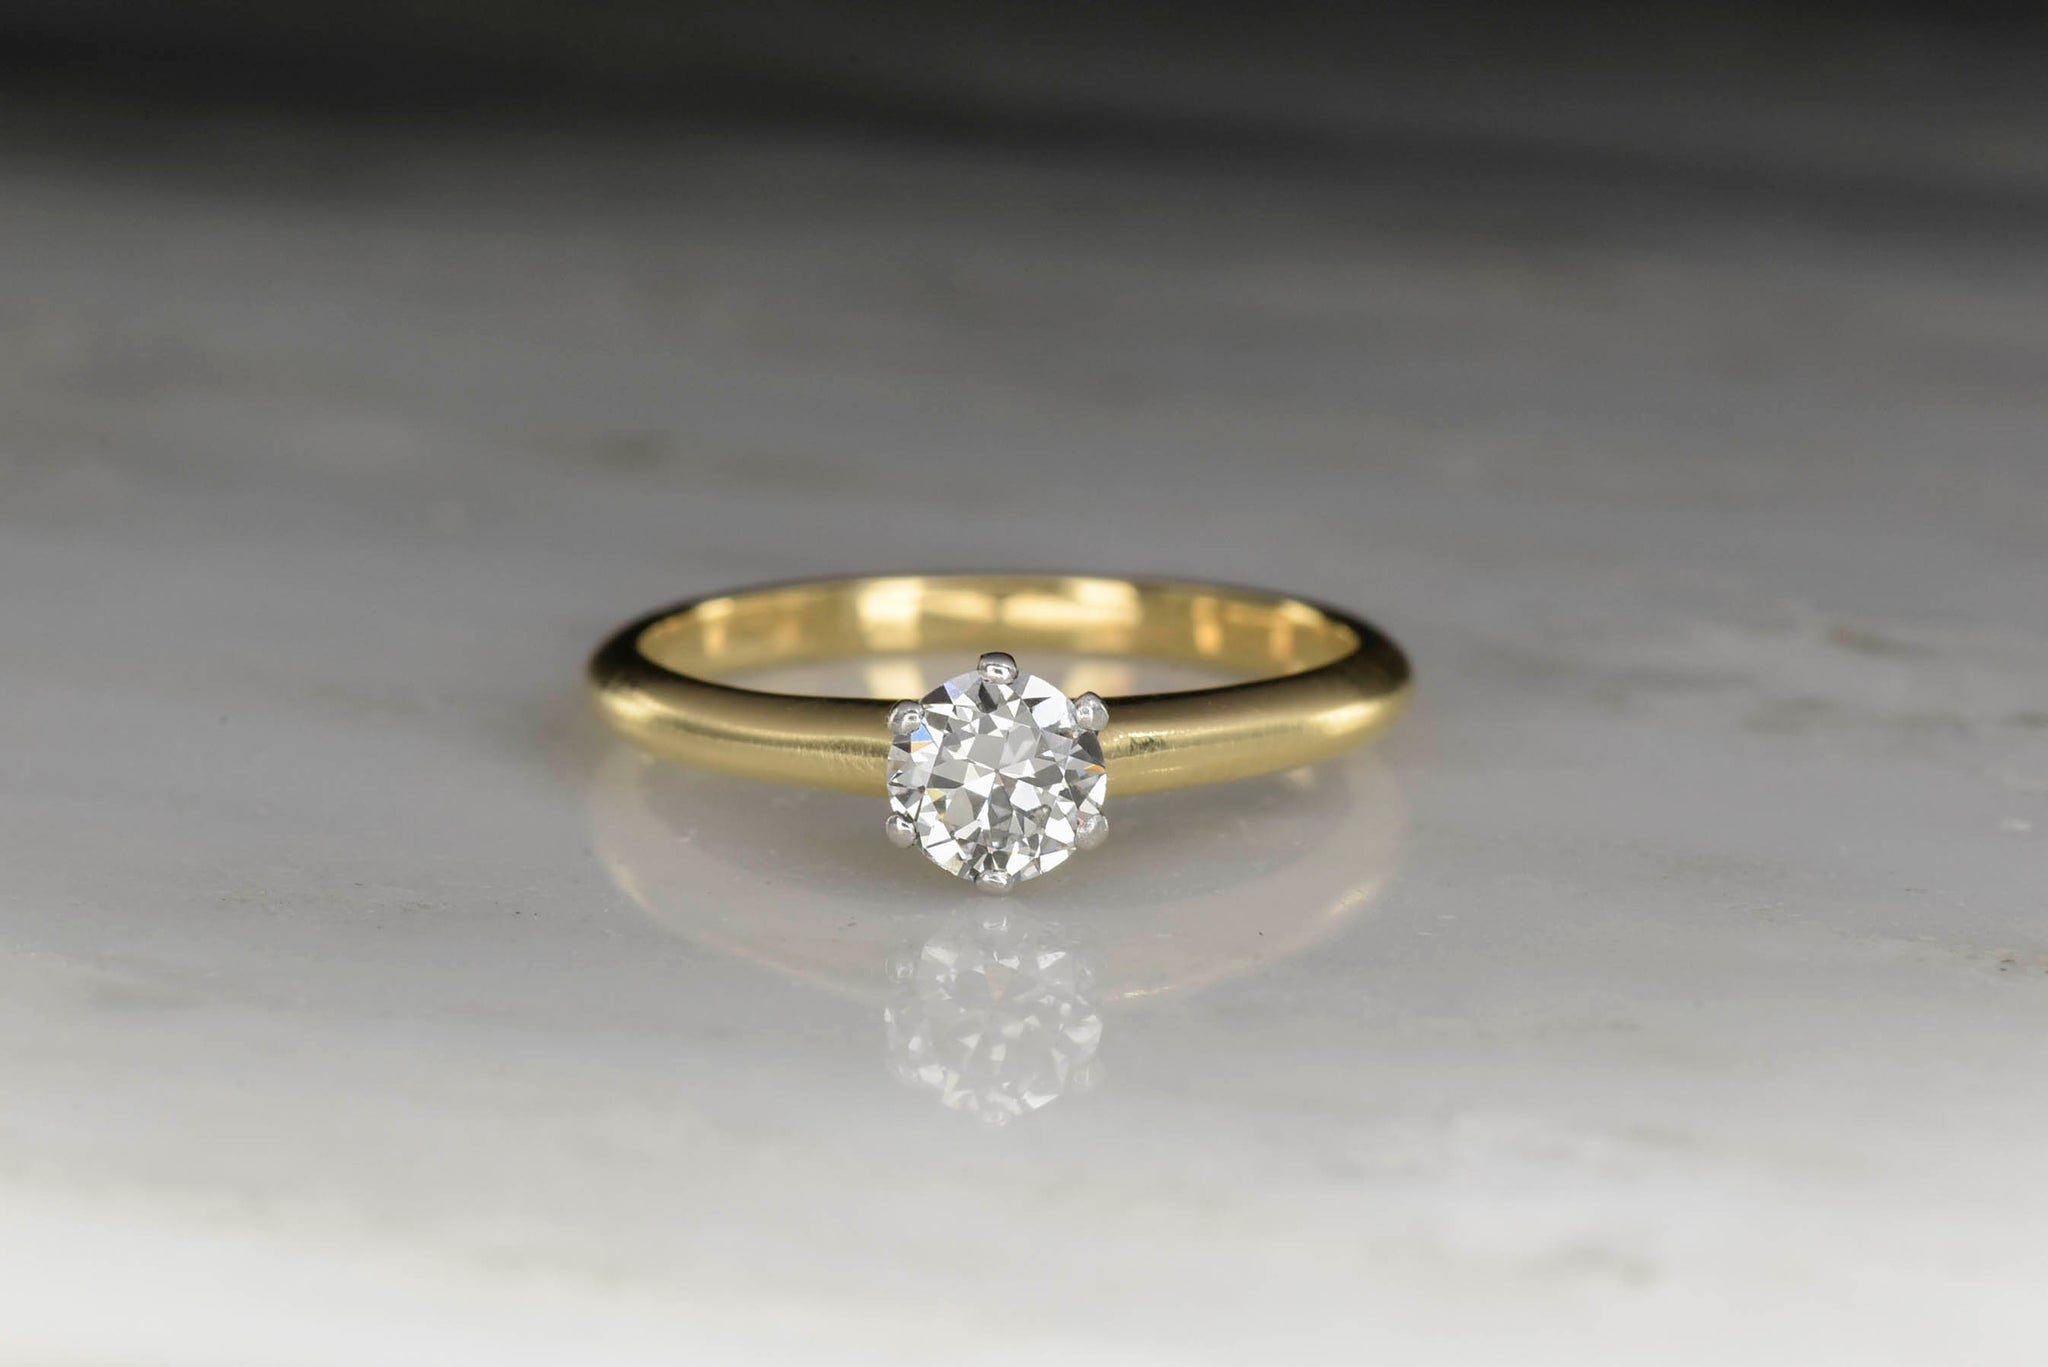 814e9ddb2 Vintage Tiffany & Co. Solitaire Engagement Ring - Pebble and Polish